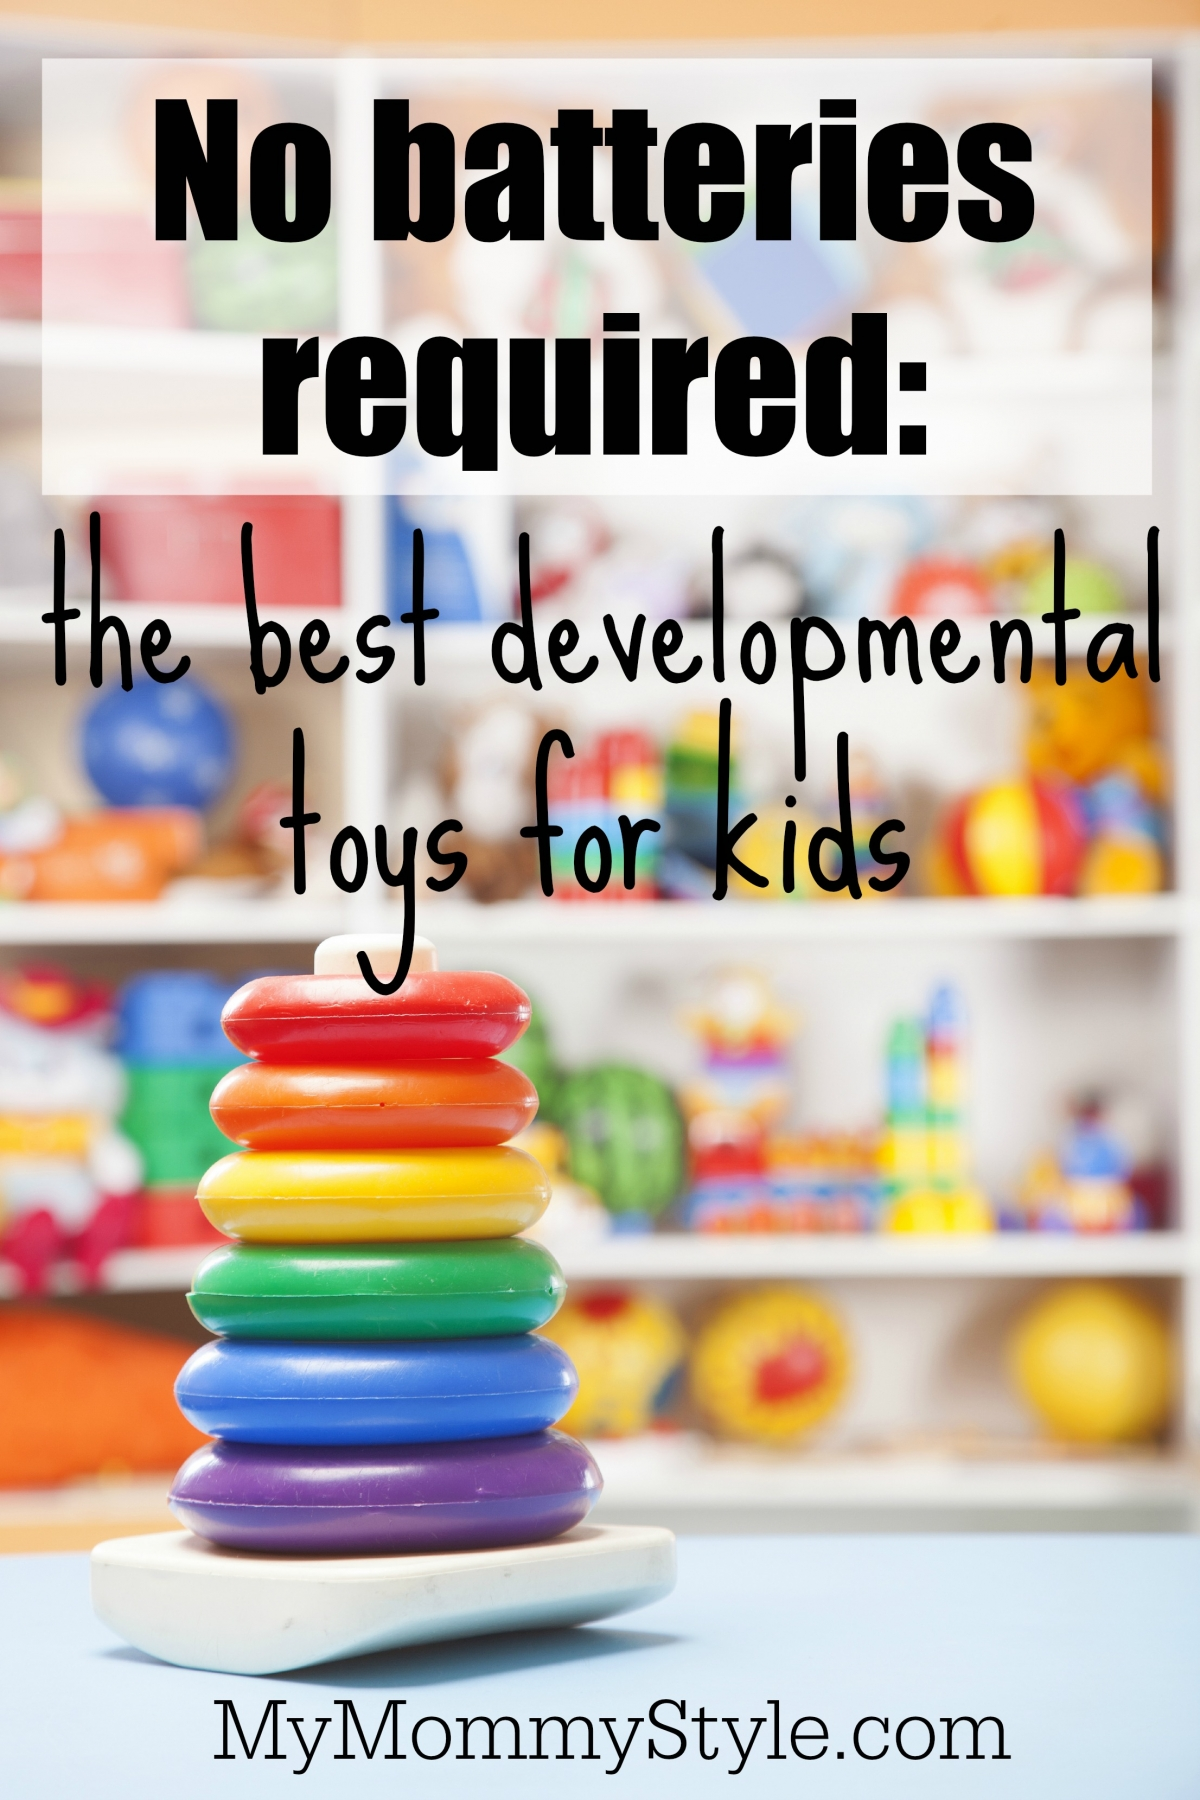 Developmental Toys For Toddlers : The best developmental toys for kids my mommy style